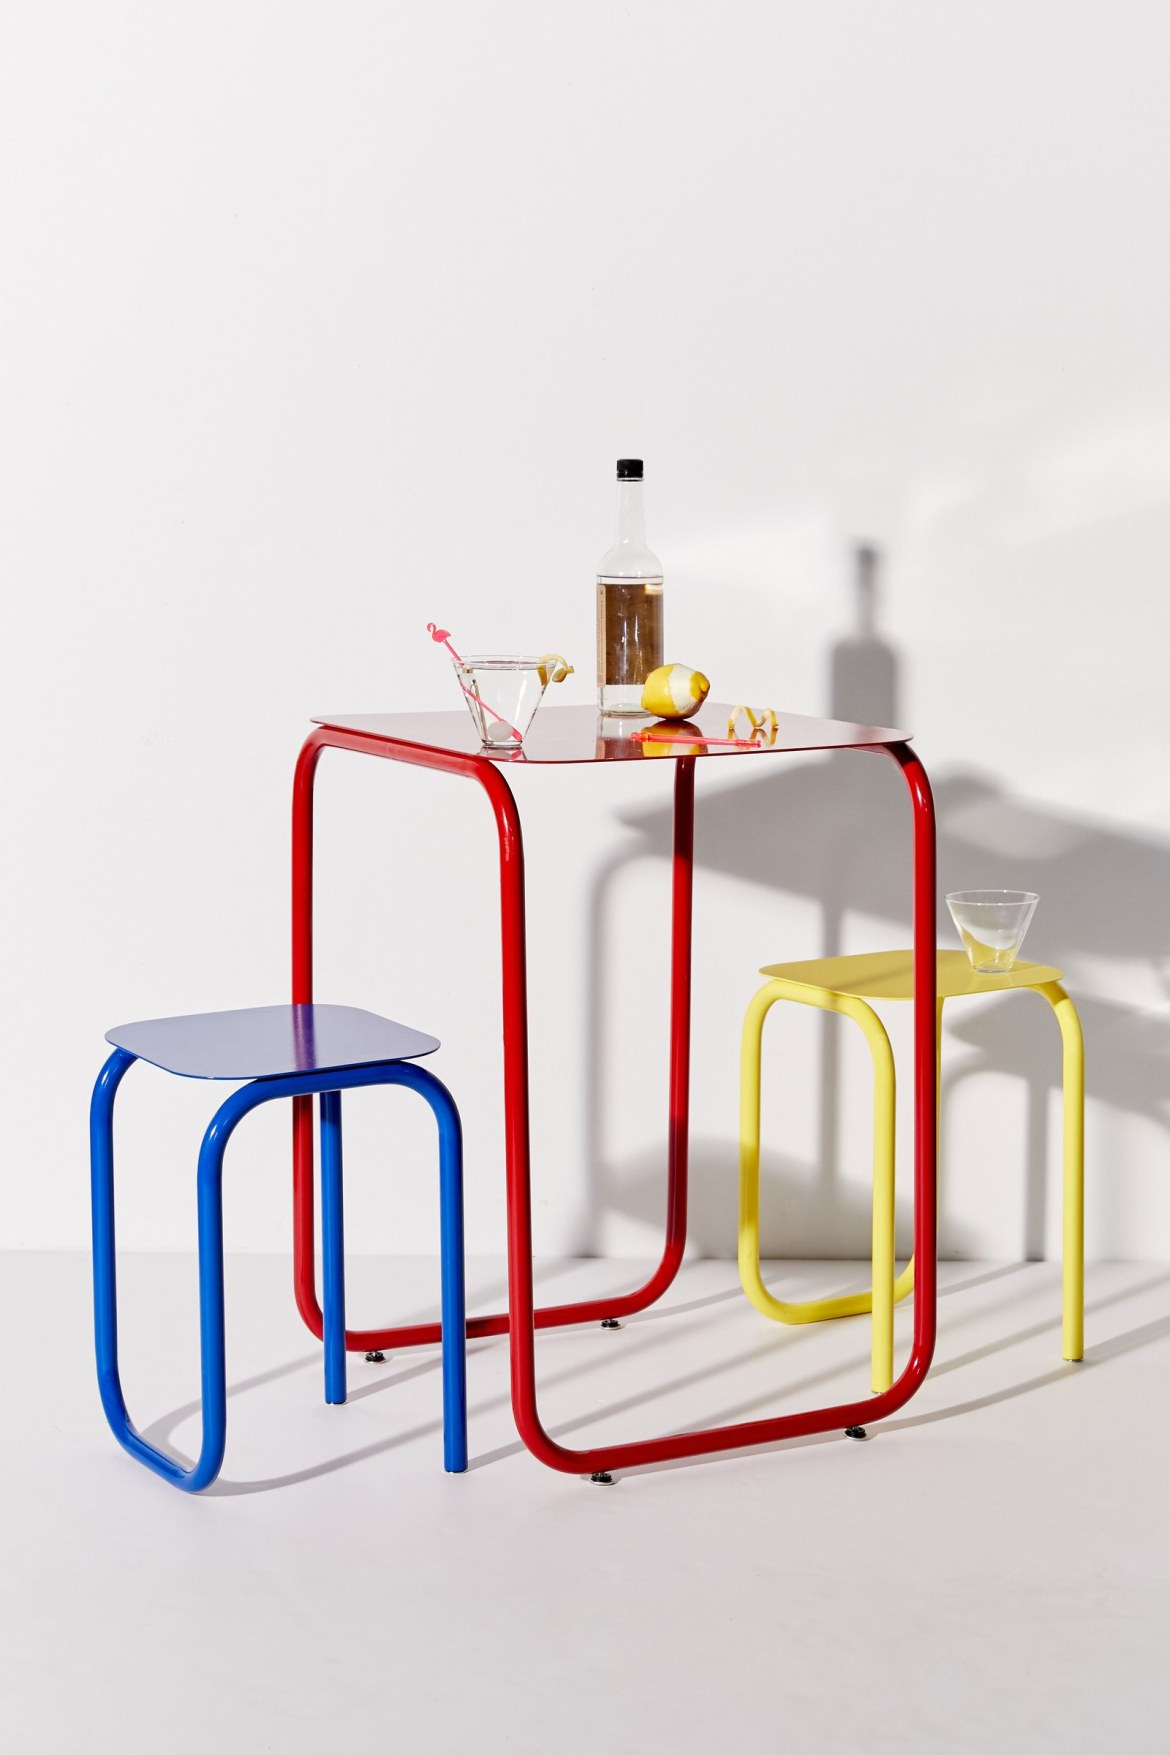 Urban-Outfitters-x-Clever-2019-Elise-McMahon-for-Likeminded-Objects-dining-set-huskdesignblog